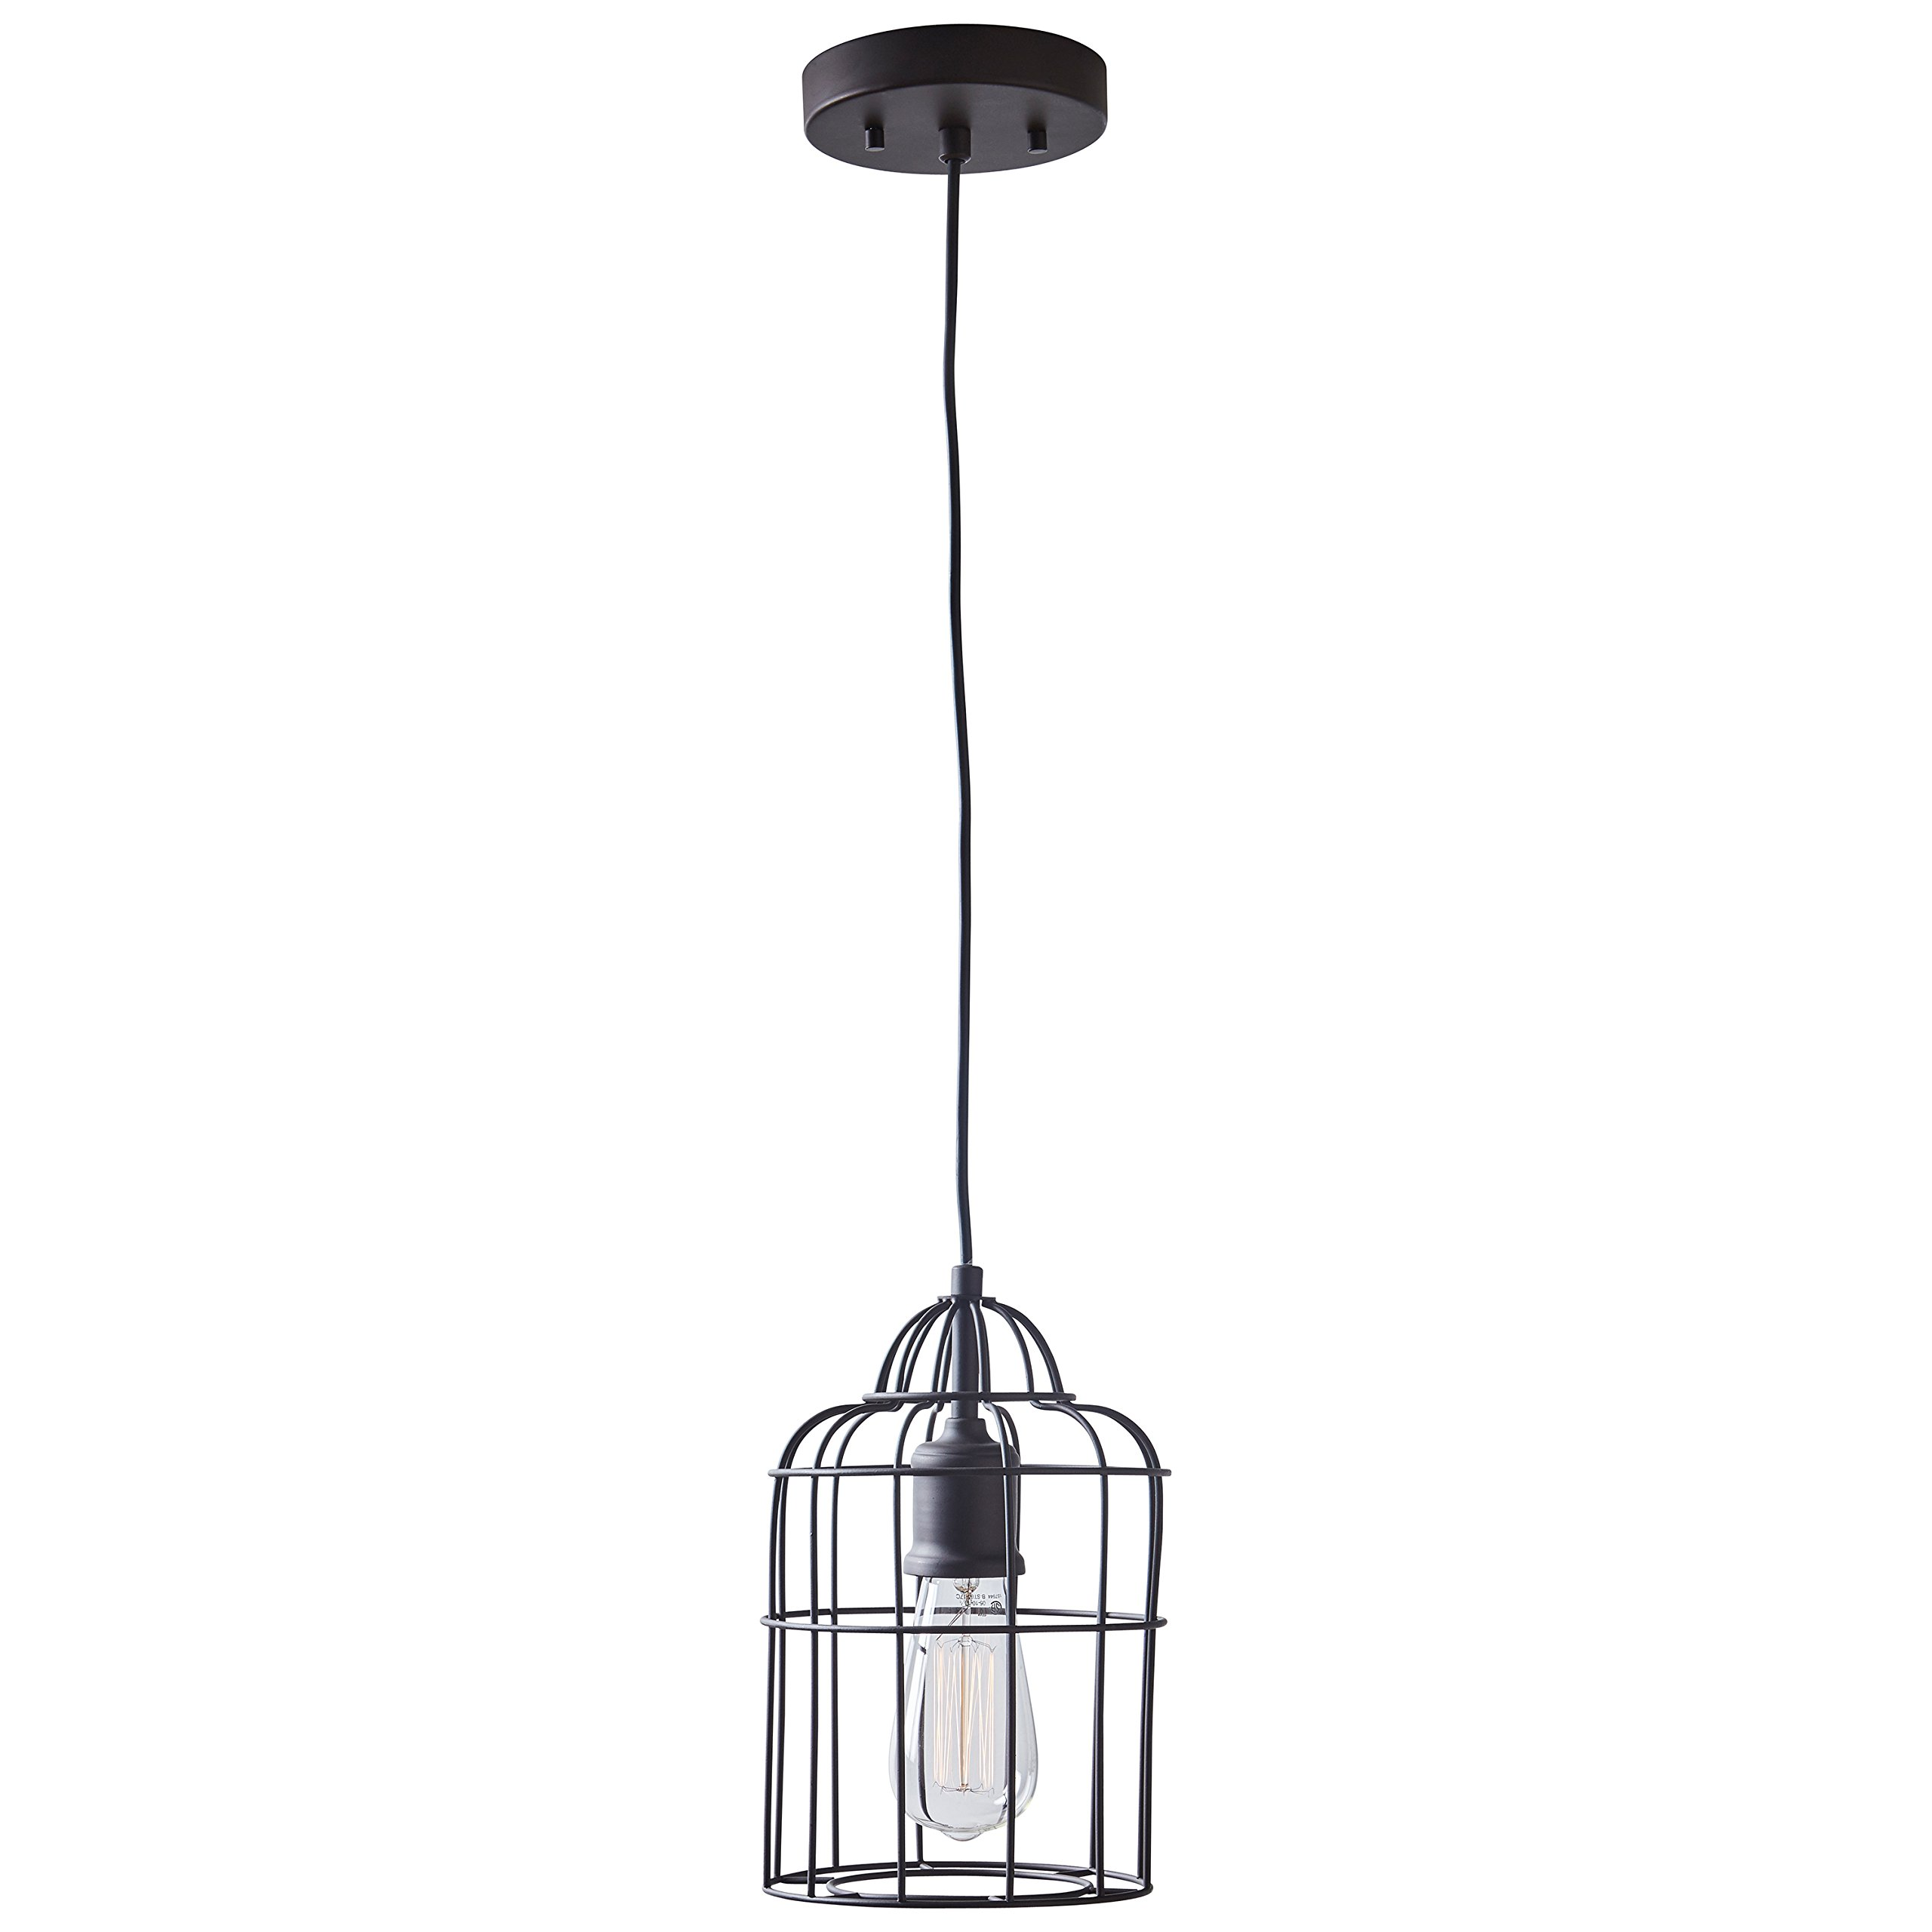 Stone & Beam Cage Pendant Light with Bulb, 12''-62''H, Oil-Rubbed Bronze